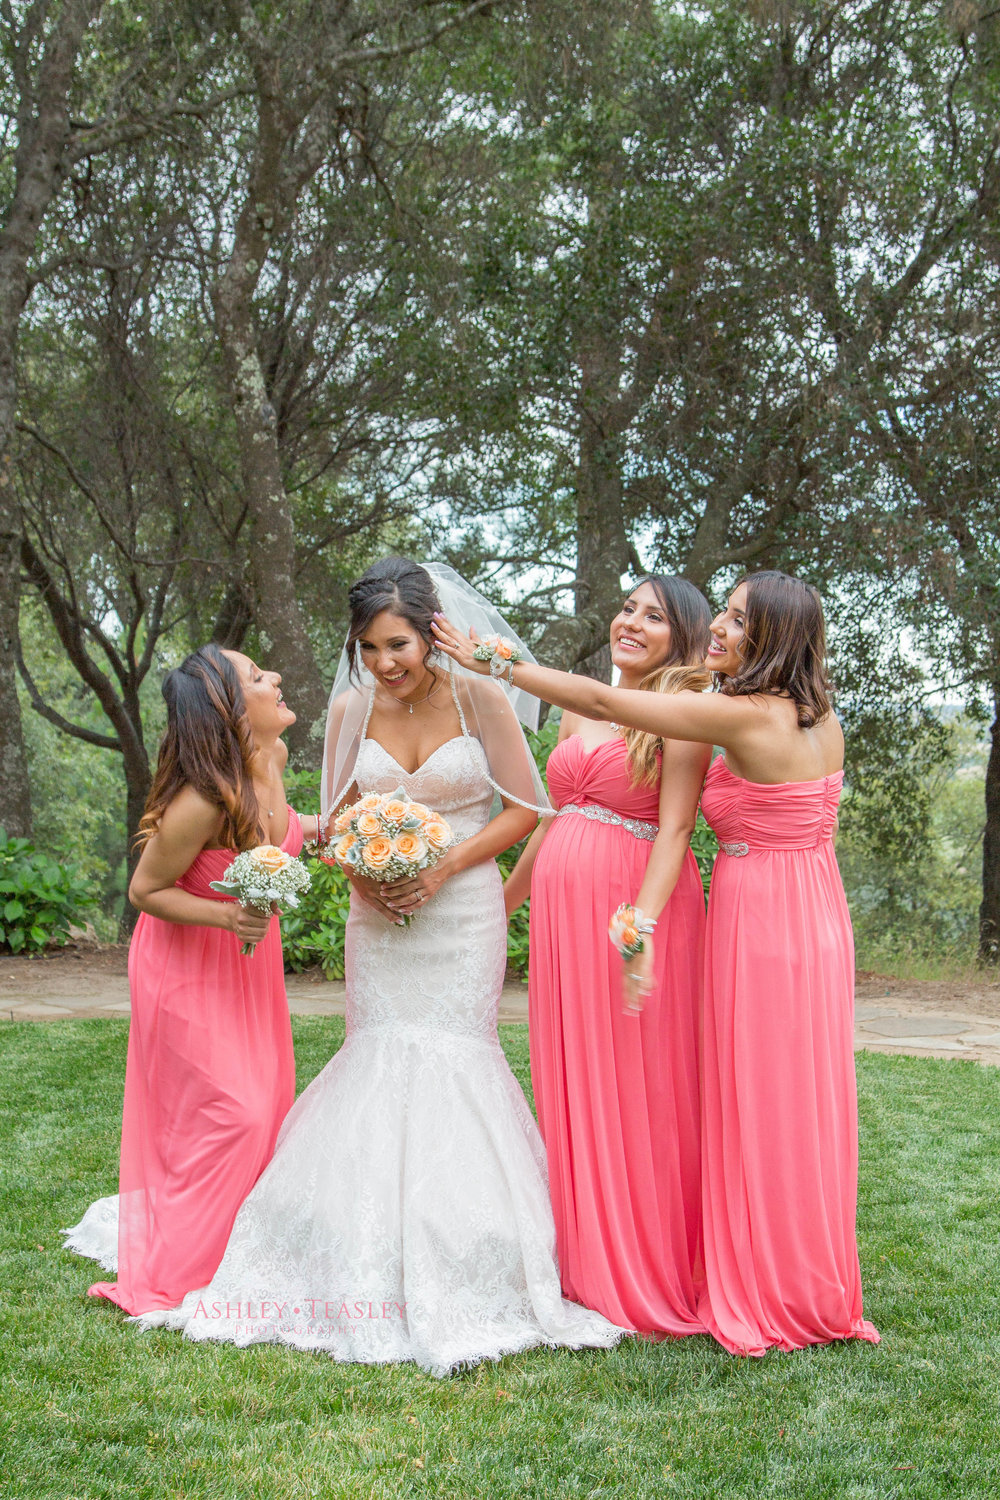 Ashley Teasley Photography- Sacramento Wedding Photographer- Bella Grace Winery 35.jpg